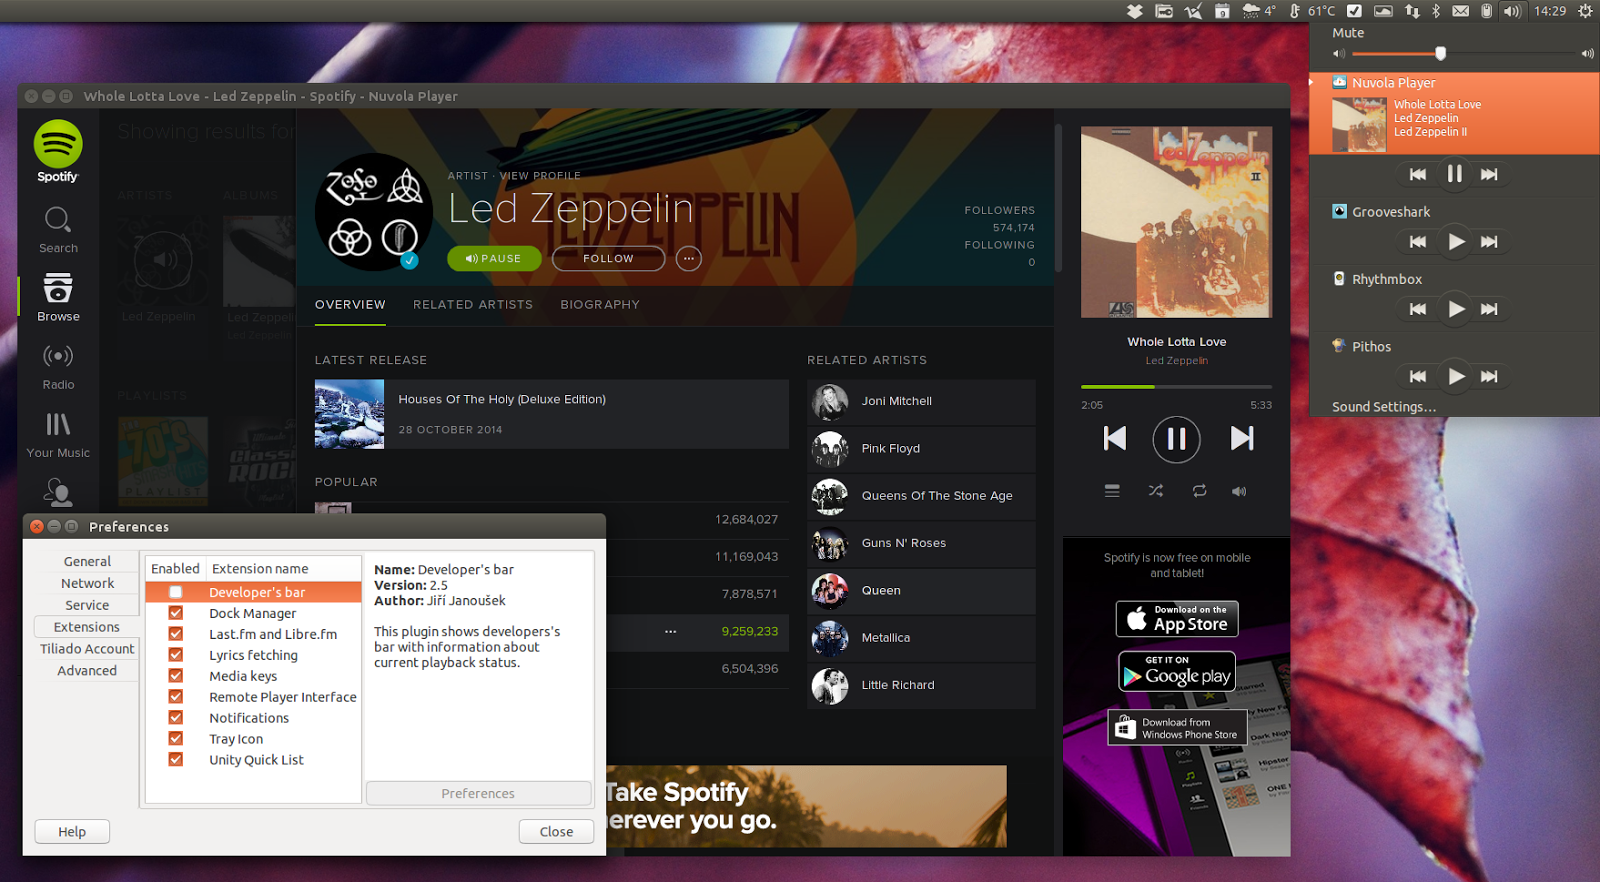 Nuvola Player 2 5 Released With Spotify Web Player And Grooveshark